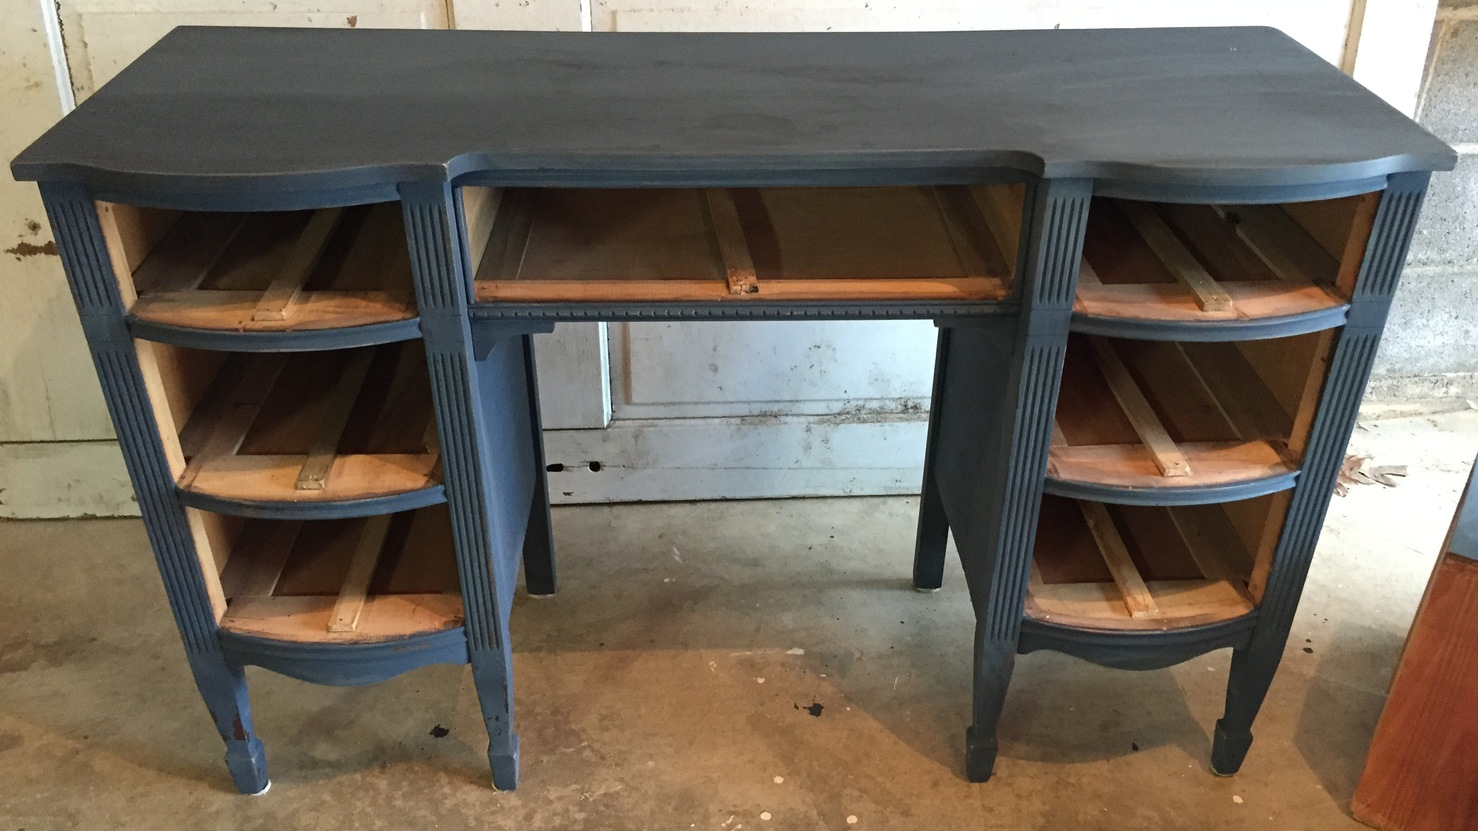 This Miss Mustard Seed Artissimo furniture project is starting to look nice.